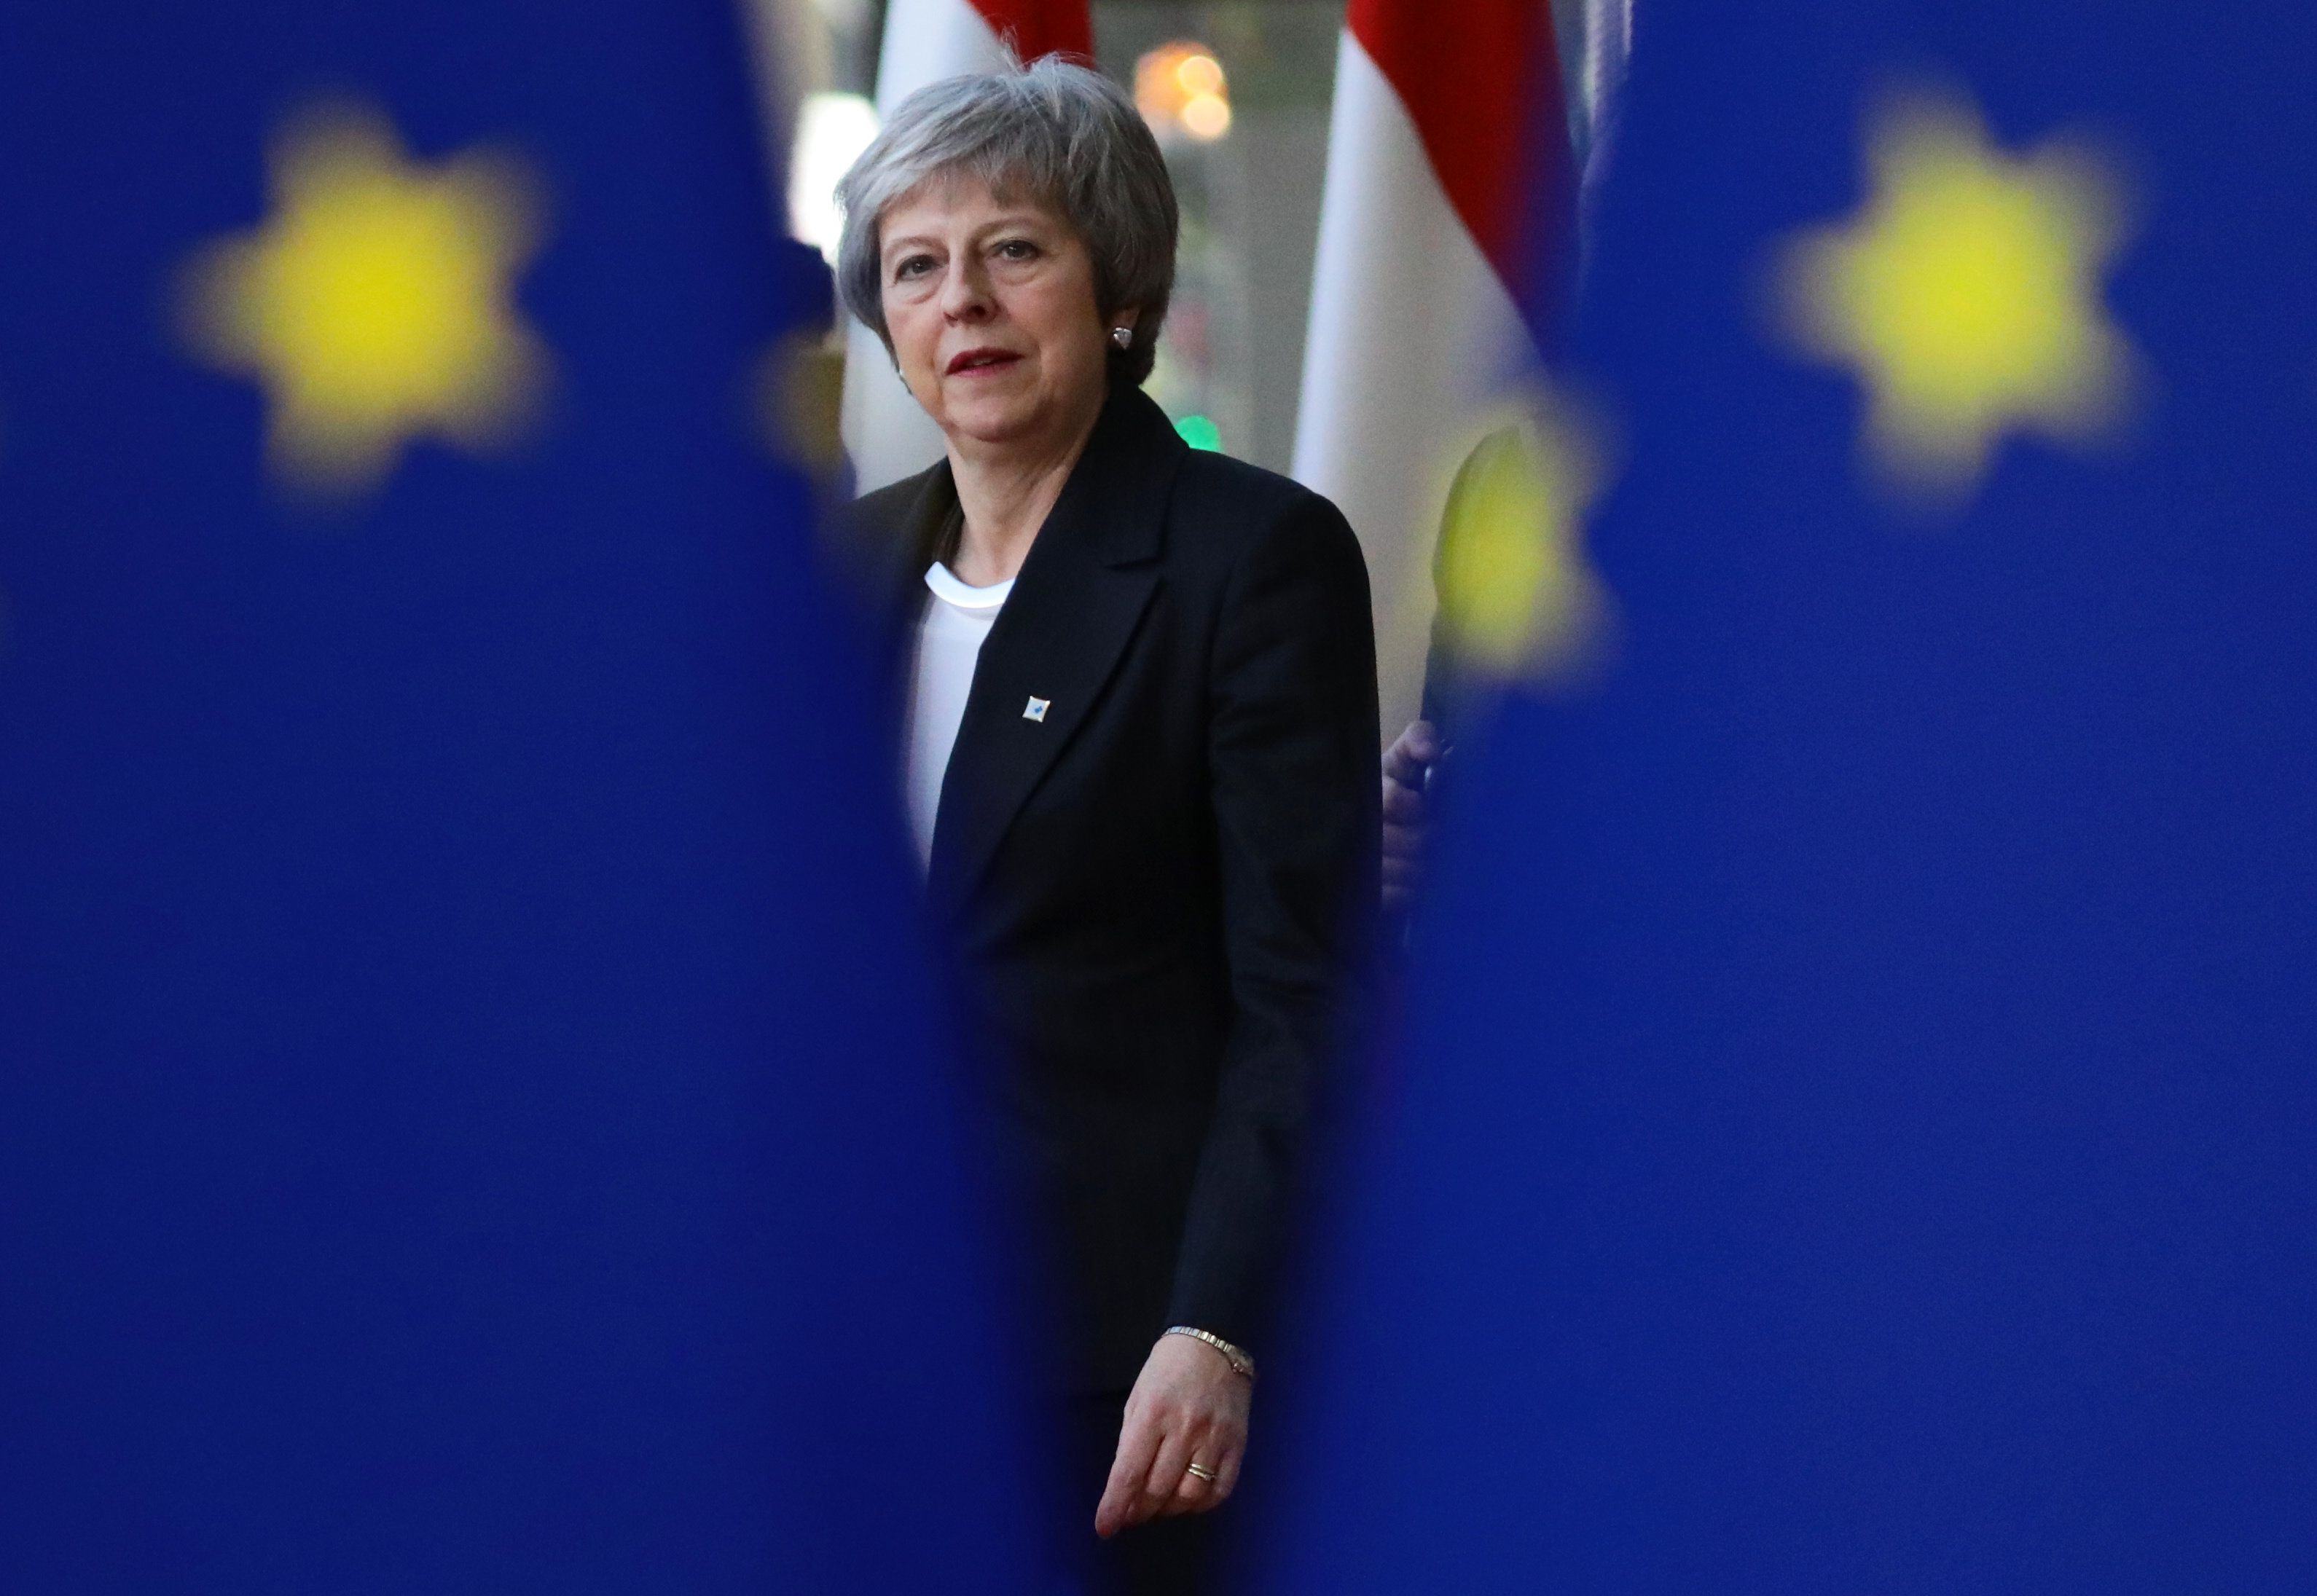 Tussle In Brussels: Why Theresa May Is Facing One Of Her Toughest Brexit